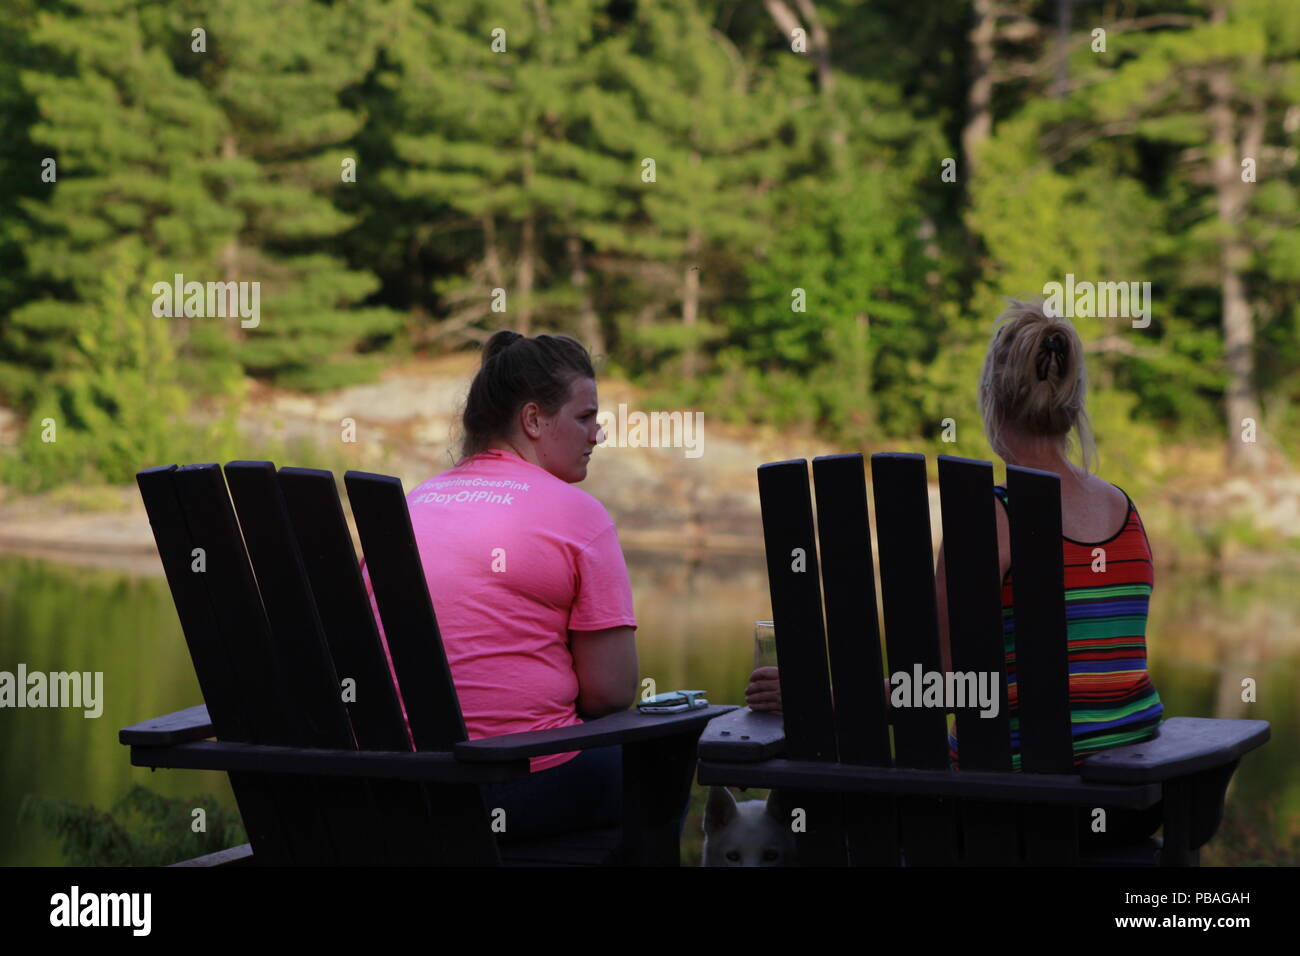 Pointe au baril, Canada - July 21st 2018: A pair of women sit in Muskoka style chairs and talk by the lake. Canadian cottage country brings in millions of tourists every year.. - Stock Image